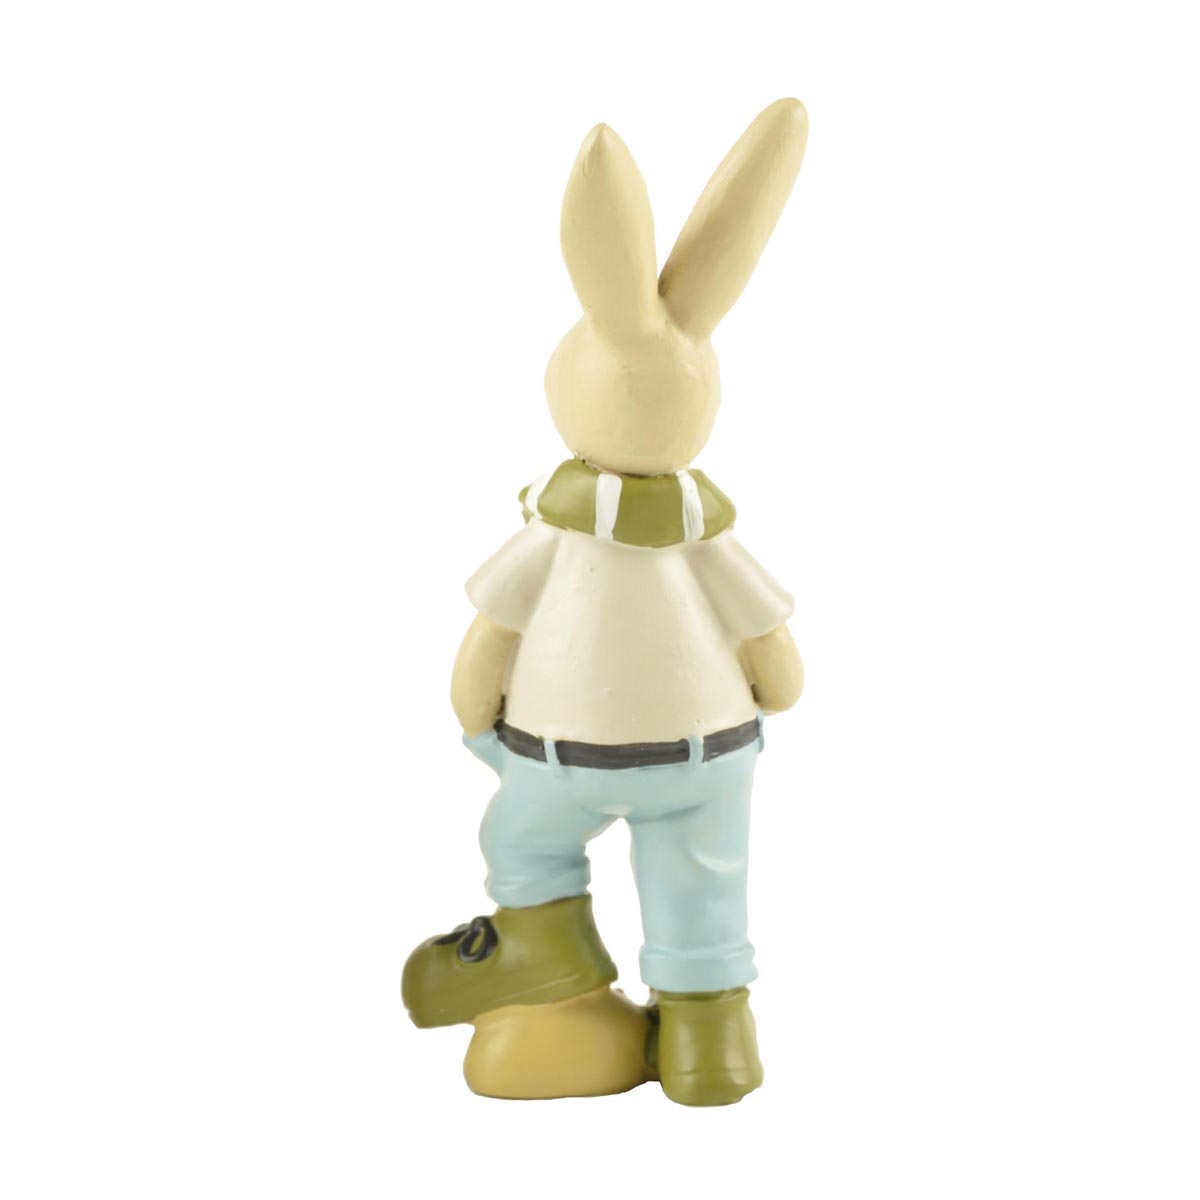 Ennas free sample easter rabbit figurines polyresin for holiday gift-1